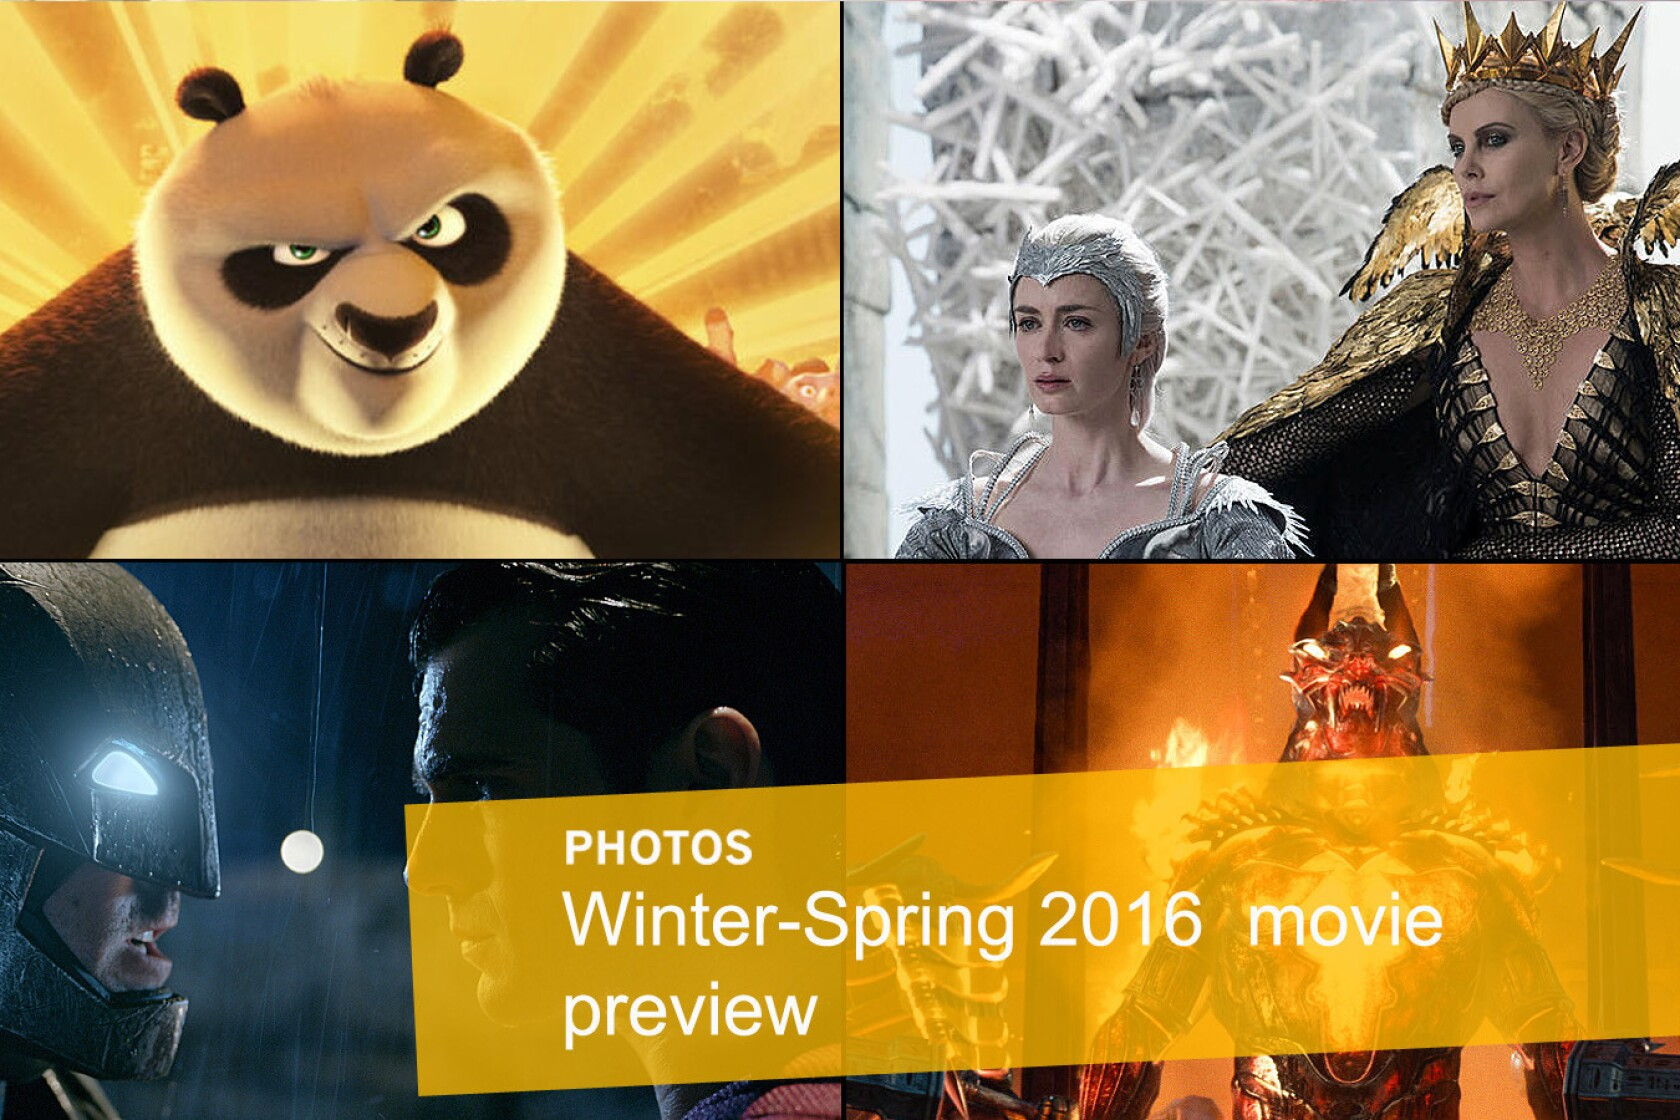 2016 winter-spring movie sneaks previews - Los Angeles Times